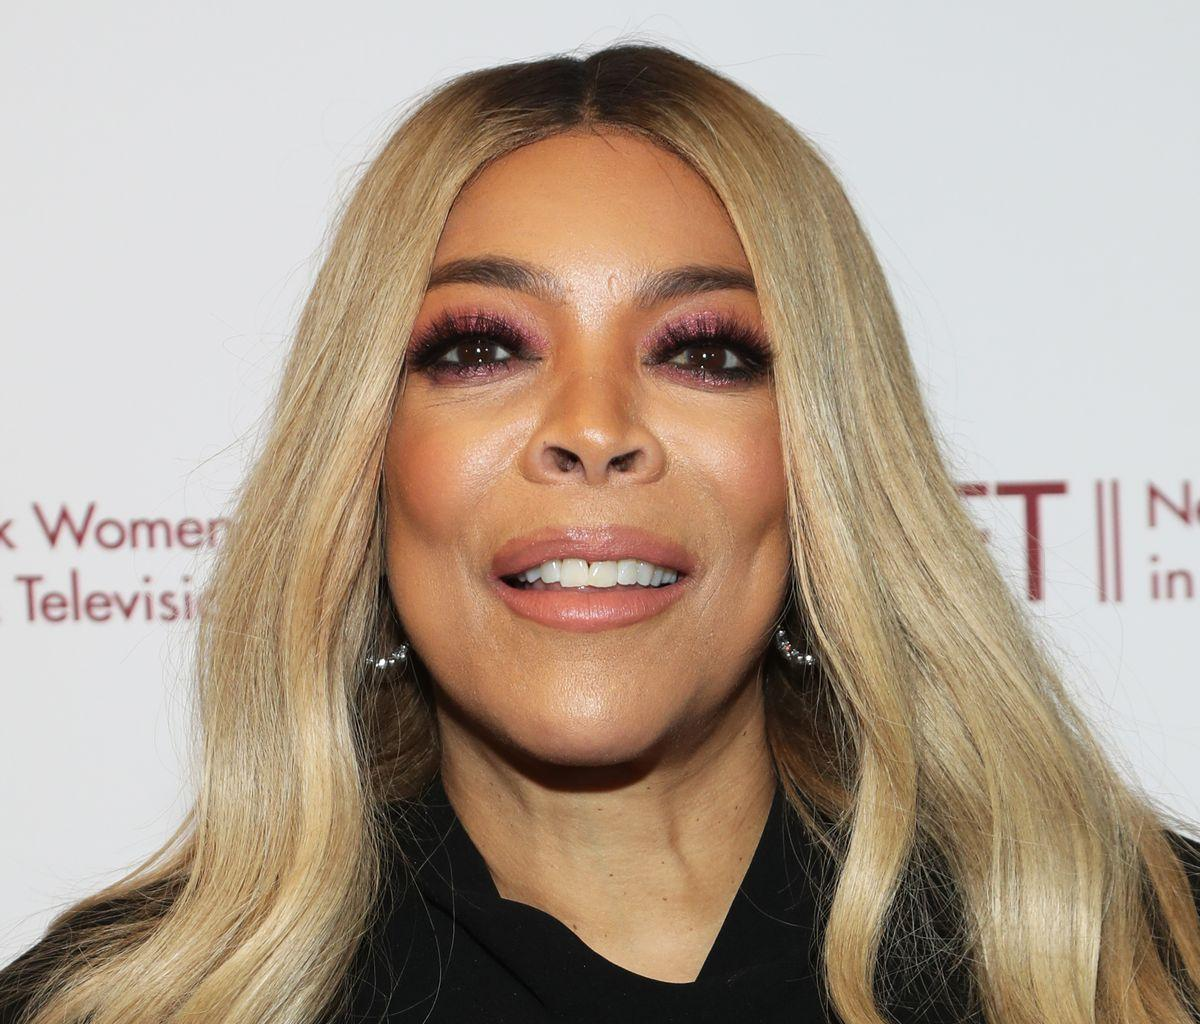 Wendy Williams Is Trending For All The Wrong Reasons - See Why Fans Are Shocked